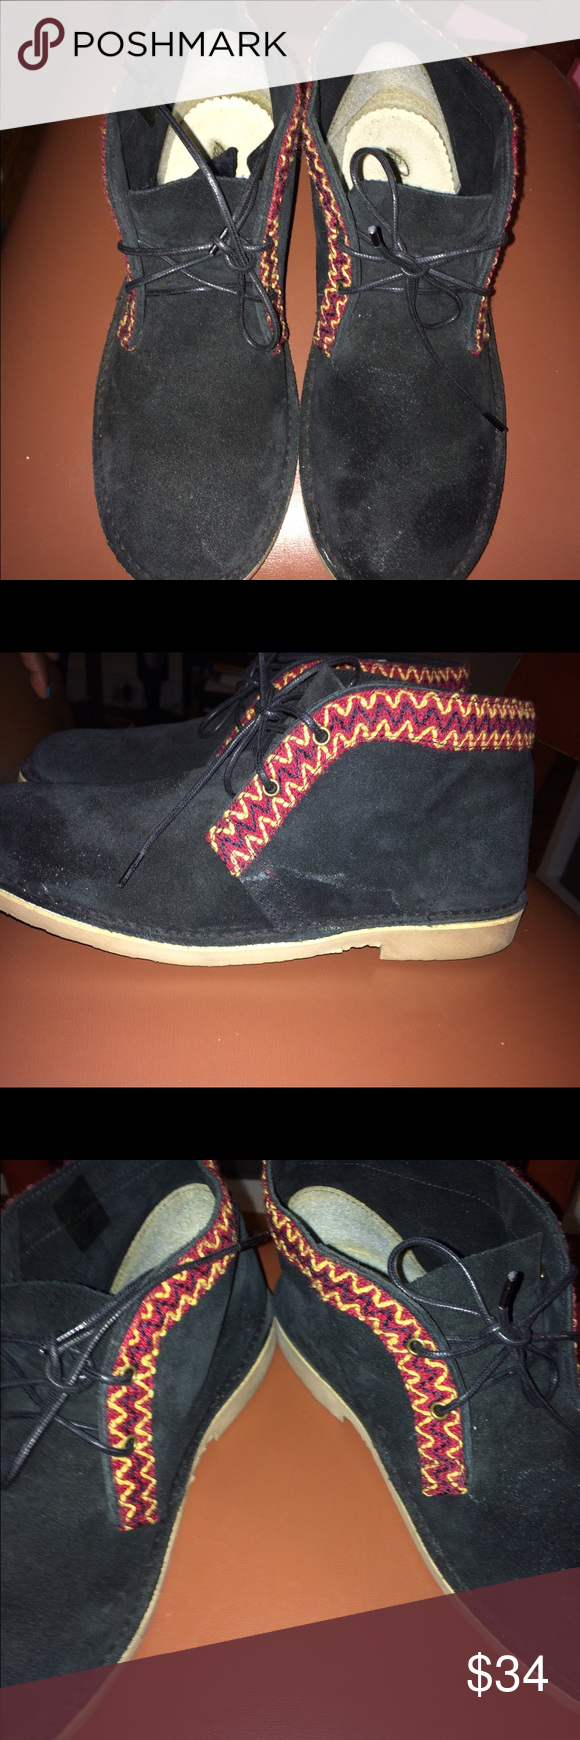 Black Tribal Desert Boots Desert Boots with multicolored tribal print  size 9 Preowned great condition Shoes Ankle Boots & Booties